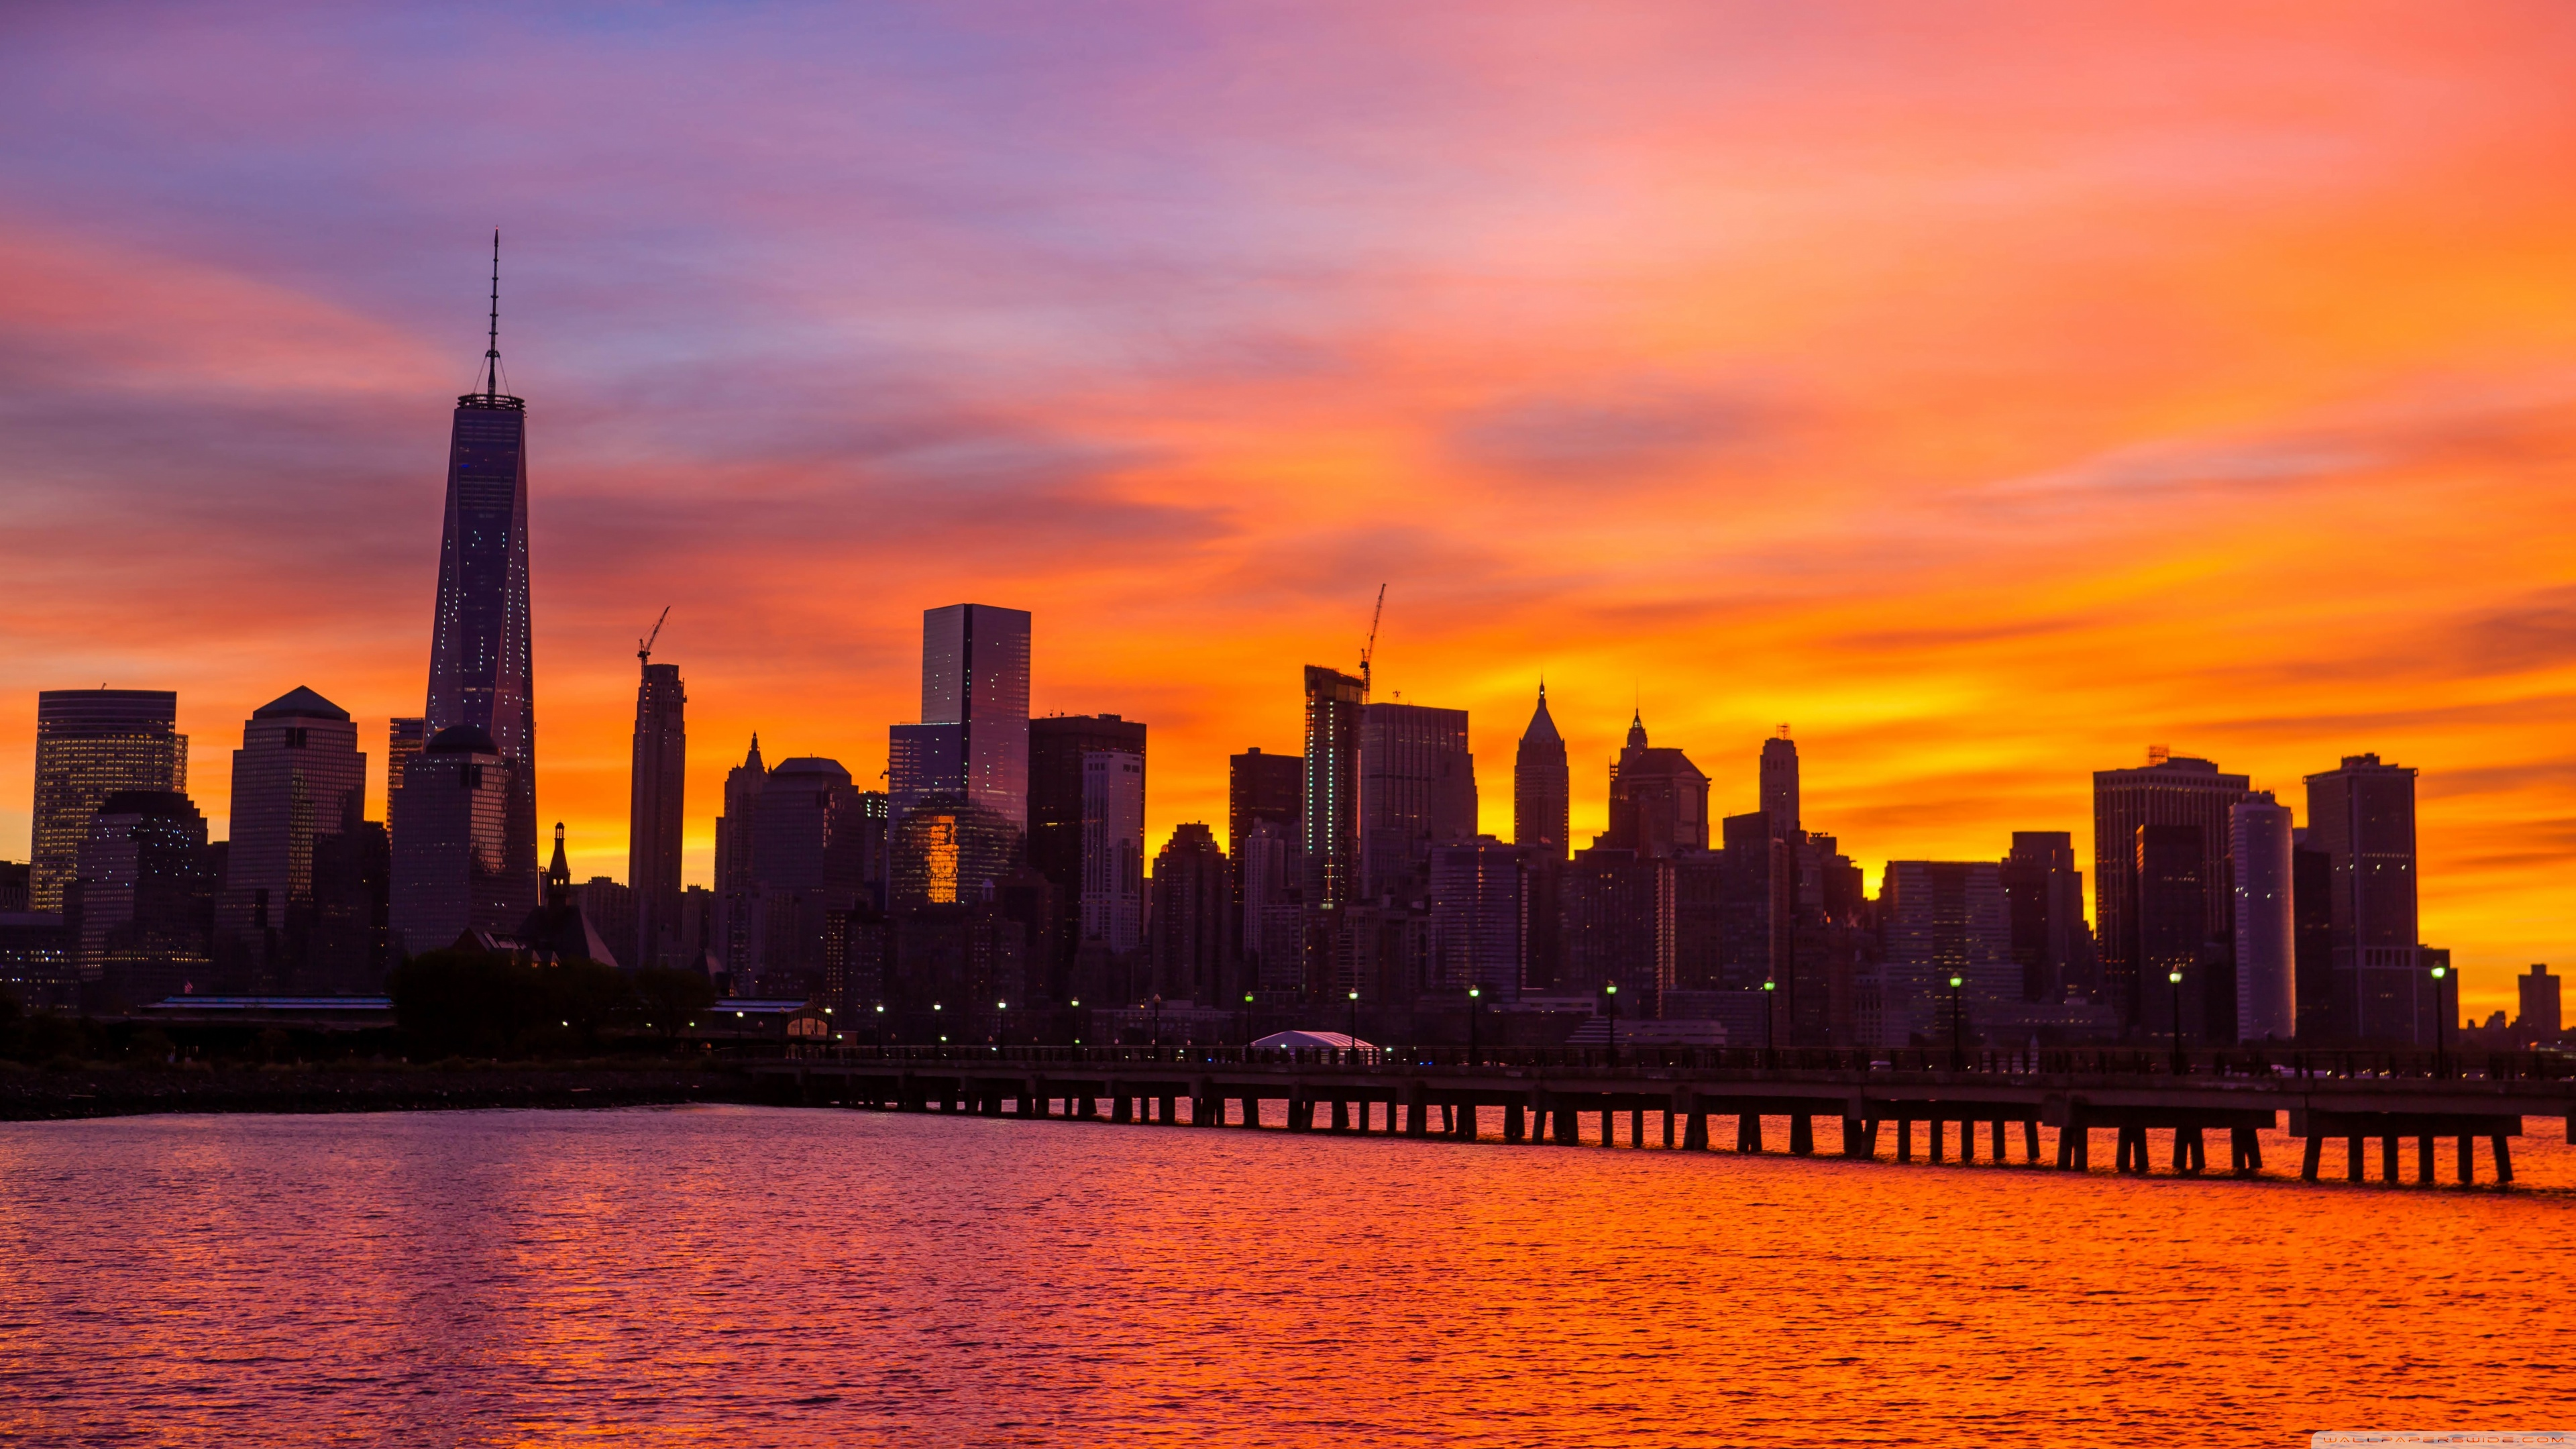 4k Cities Skyline Wallpaper New York City Skyline Sunrise